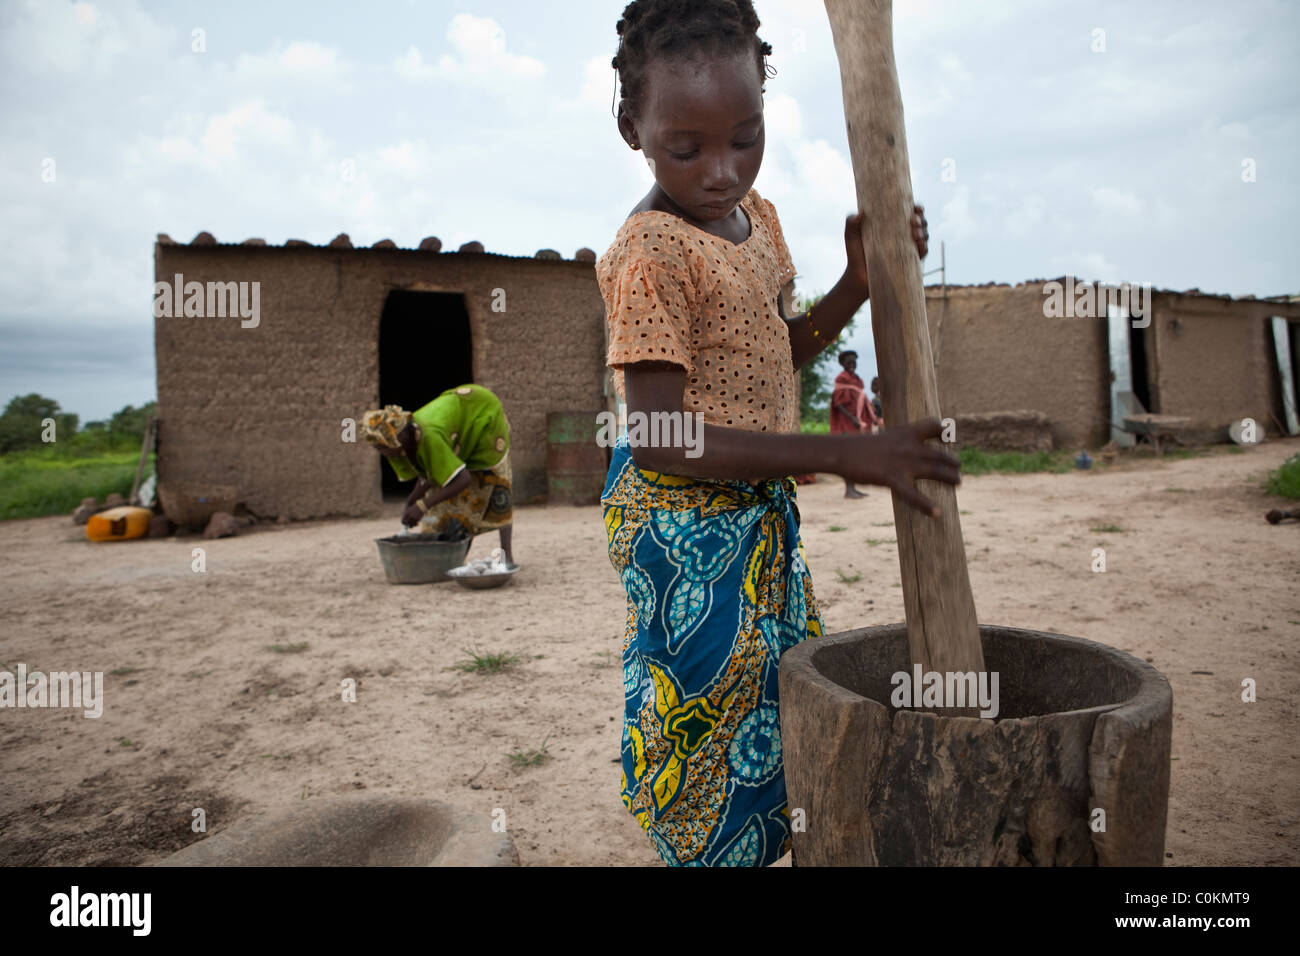 A young girl grinds peanuts into peanut butter in Safo, Mali, West Africa. - Stock Image